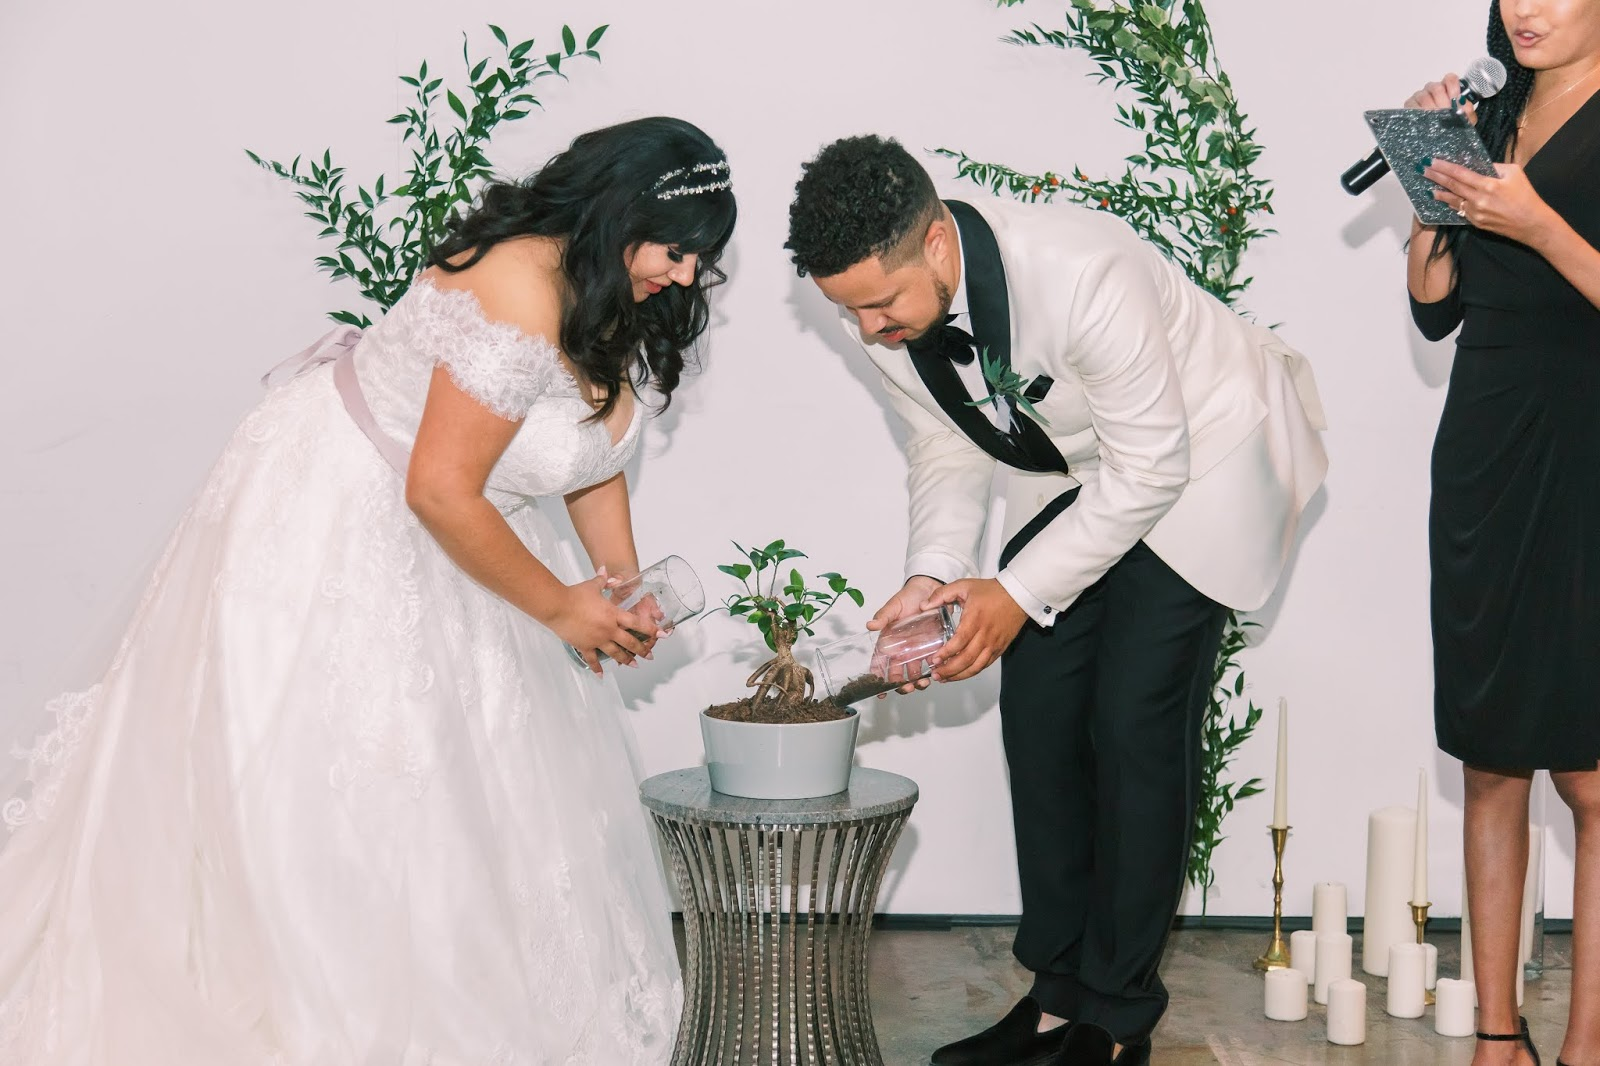 las vegas wedding, african american officiant, tree planting